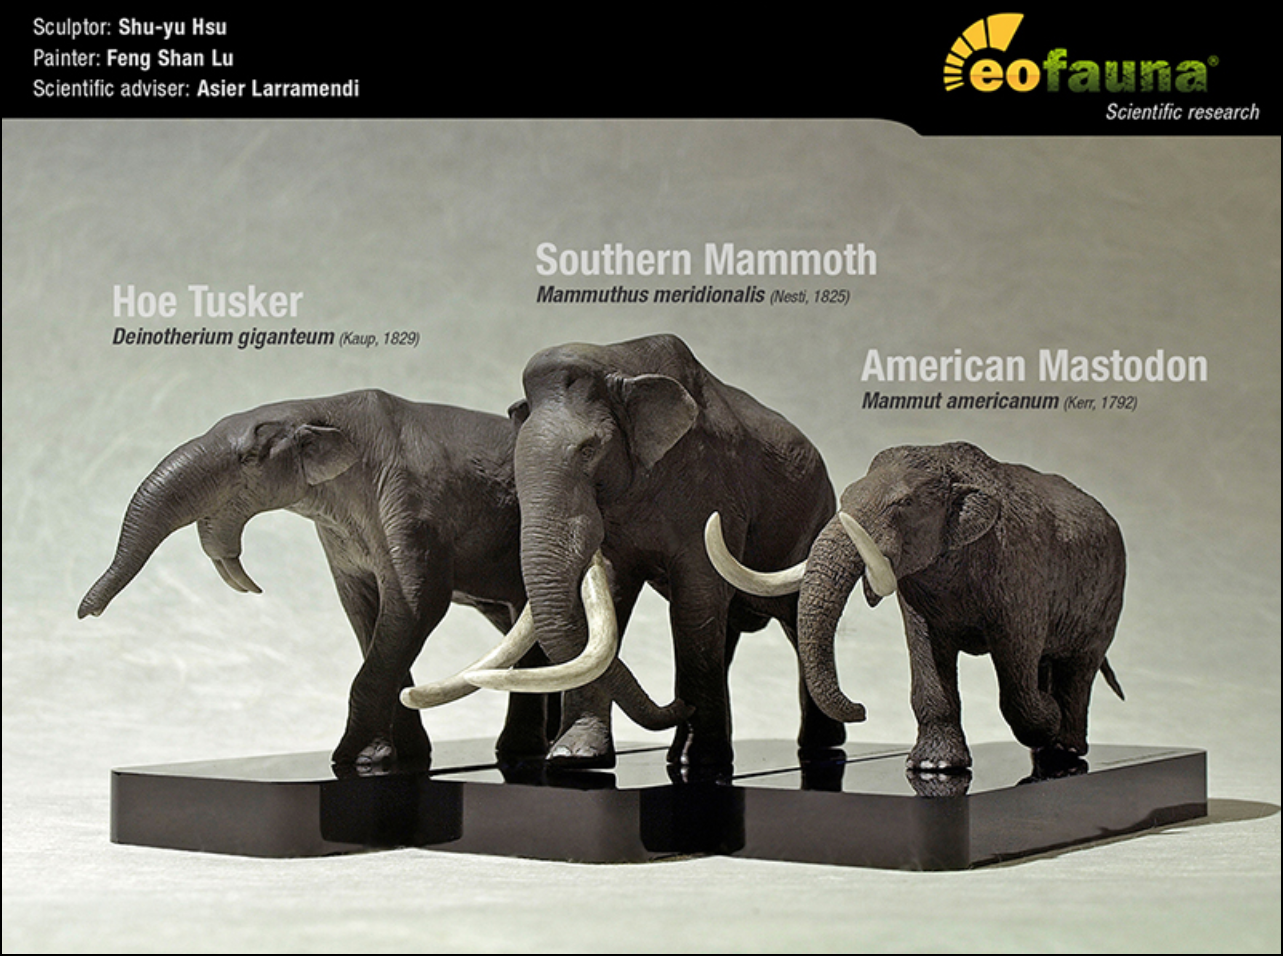 Eofauna Science Art Dinosaurs Mammoths Bringing The